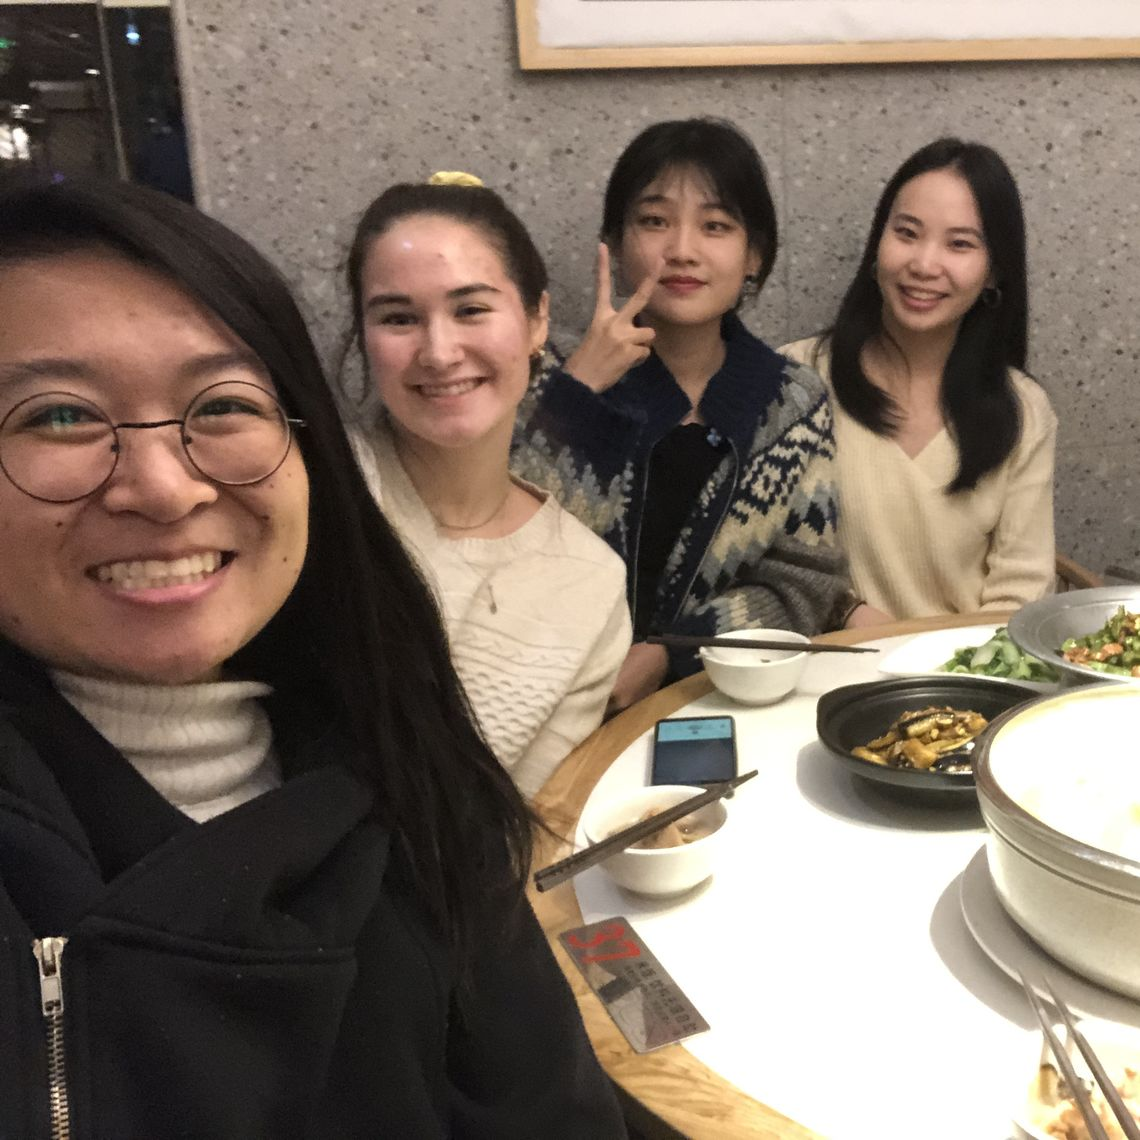 Dinner in Wuhan with friends, including Amy, a Hong Kong Princeton in Asia Fellow, and Polly and Tanila, two upperclassmen at Wuhan University of Technology.